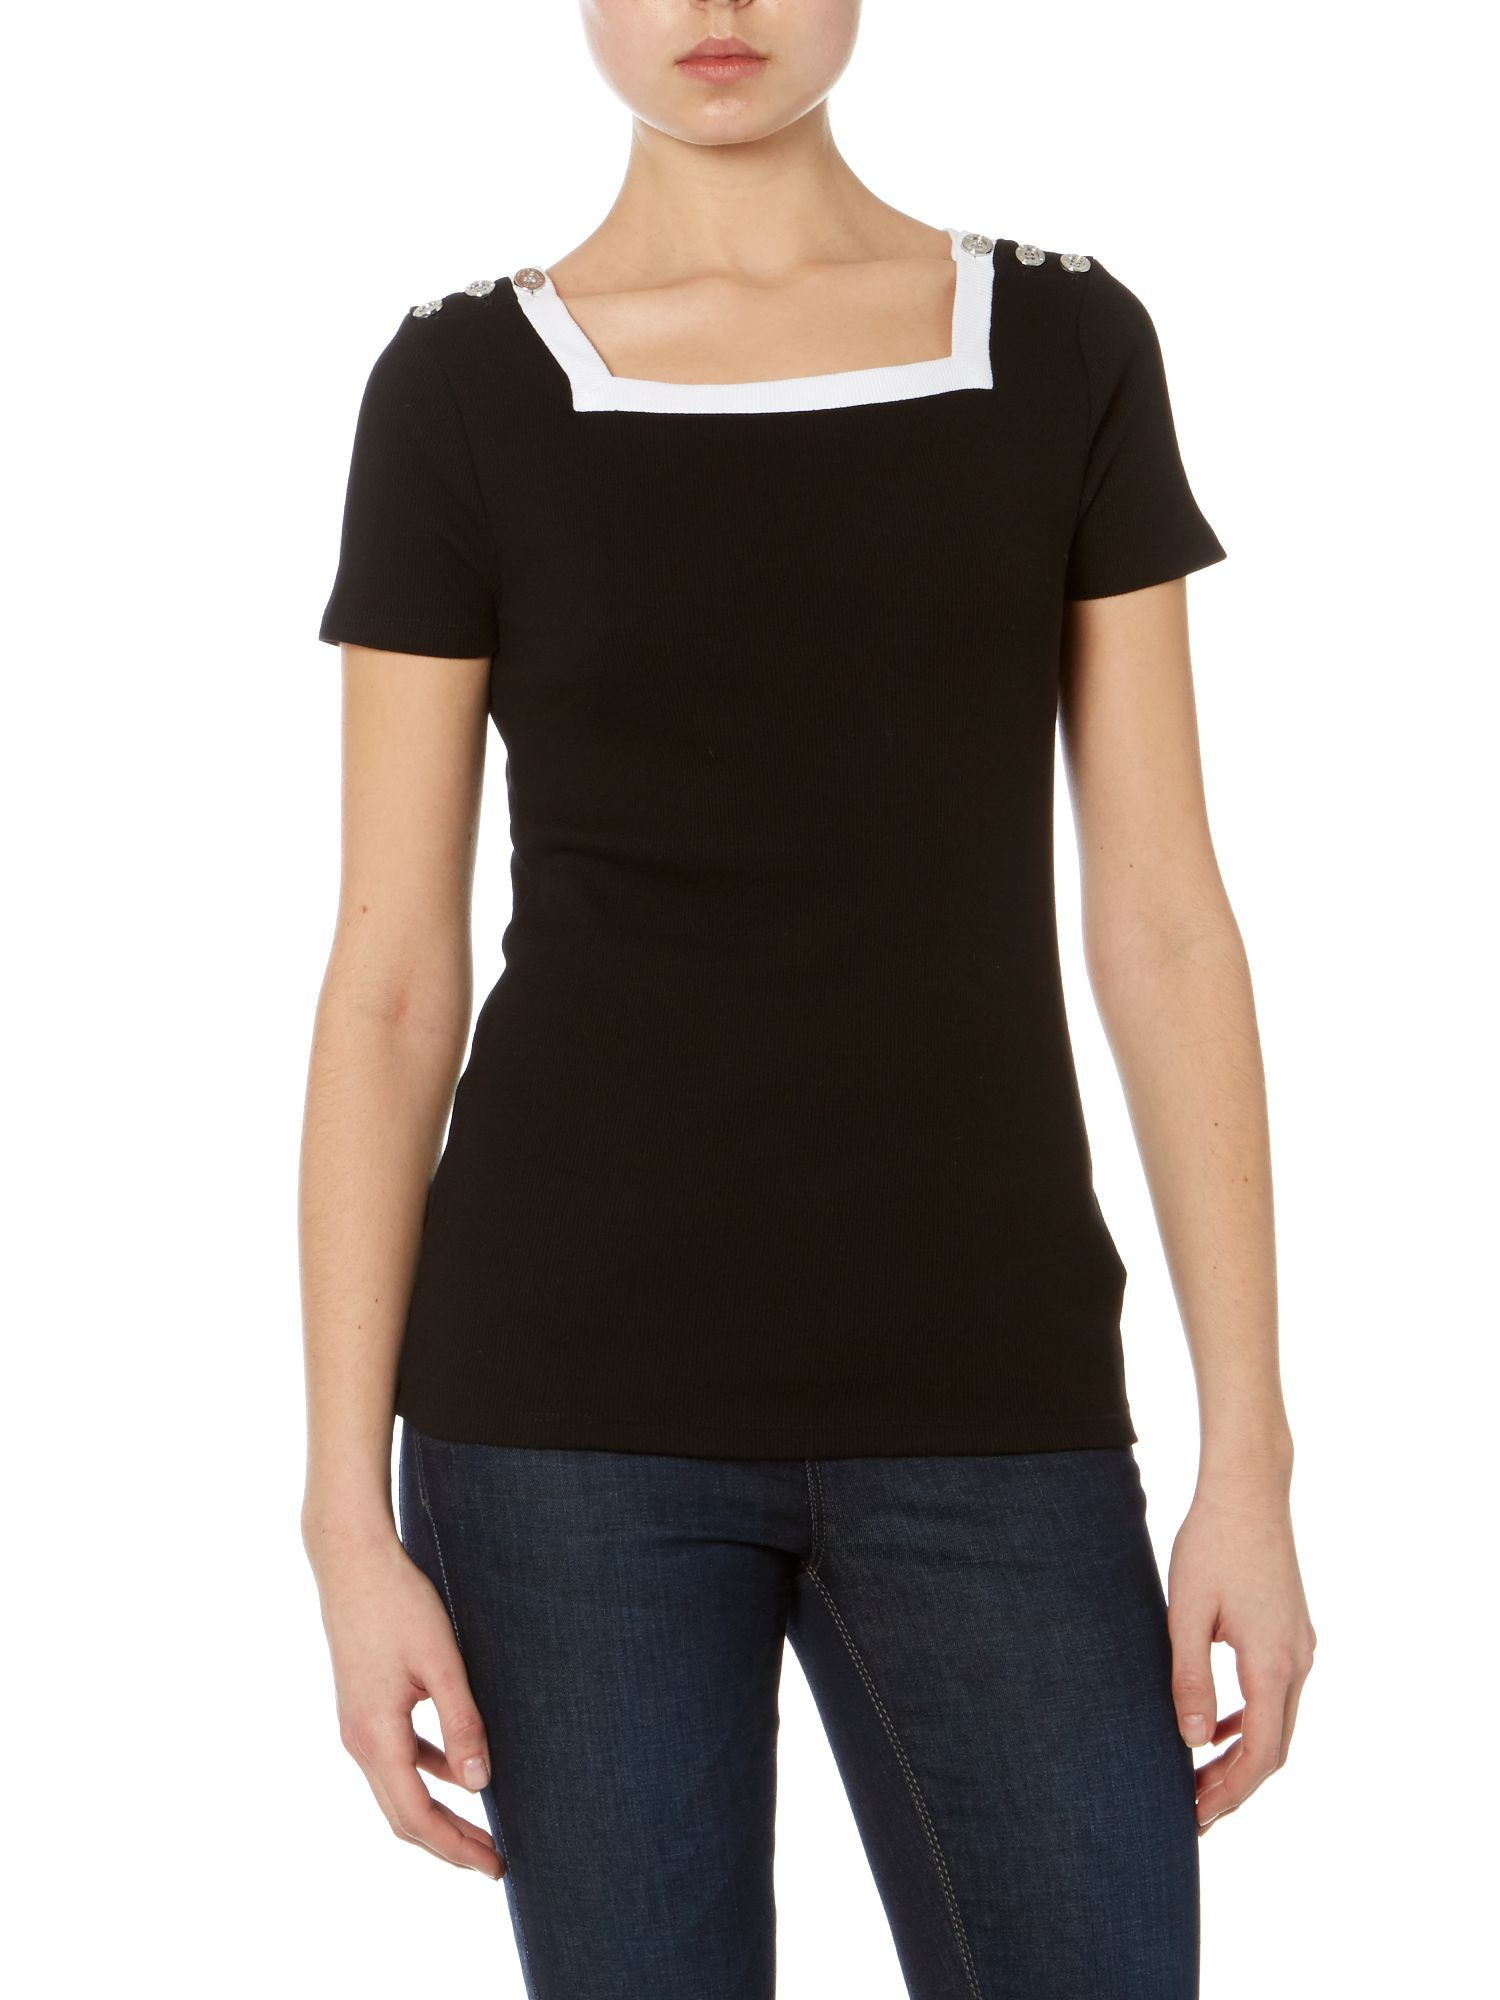 Button detail top with contrast neckline